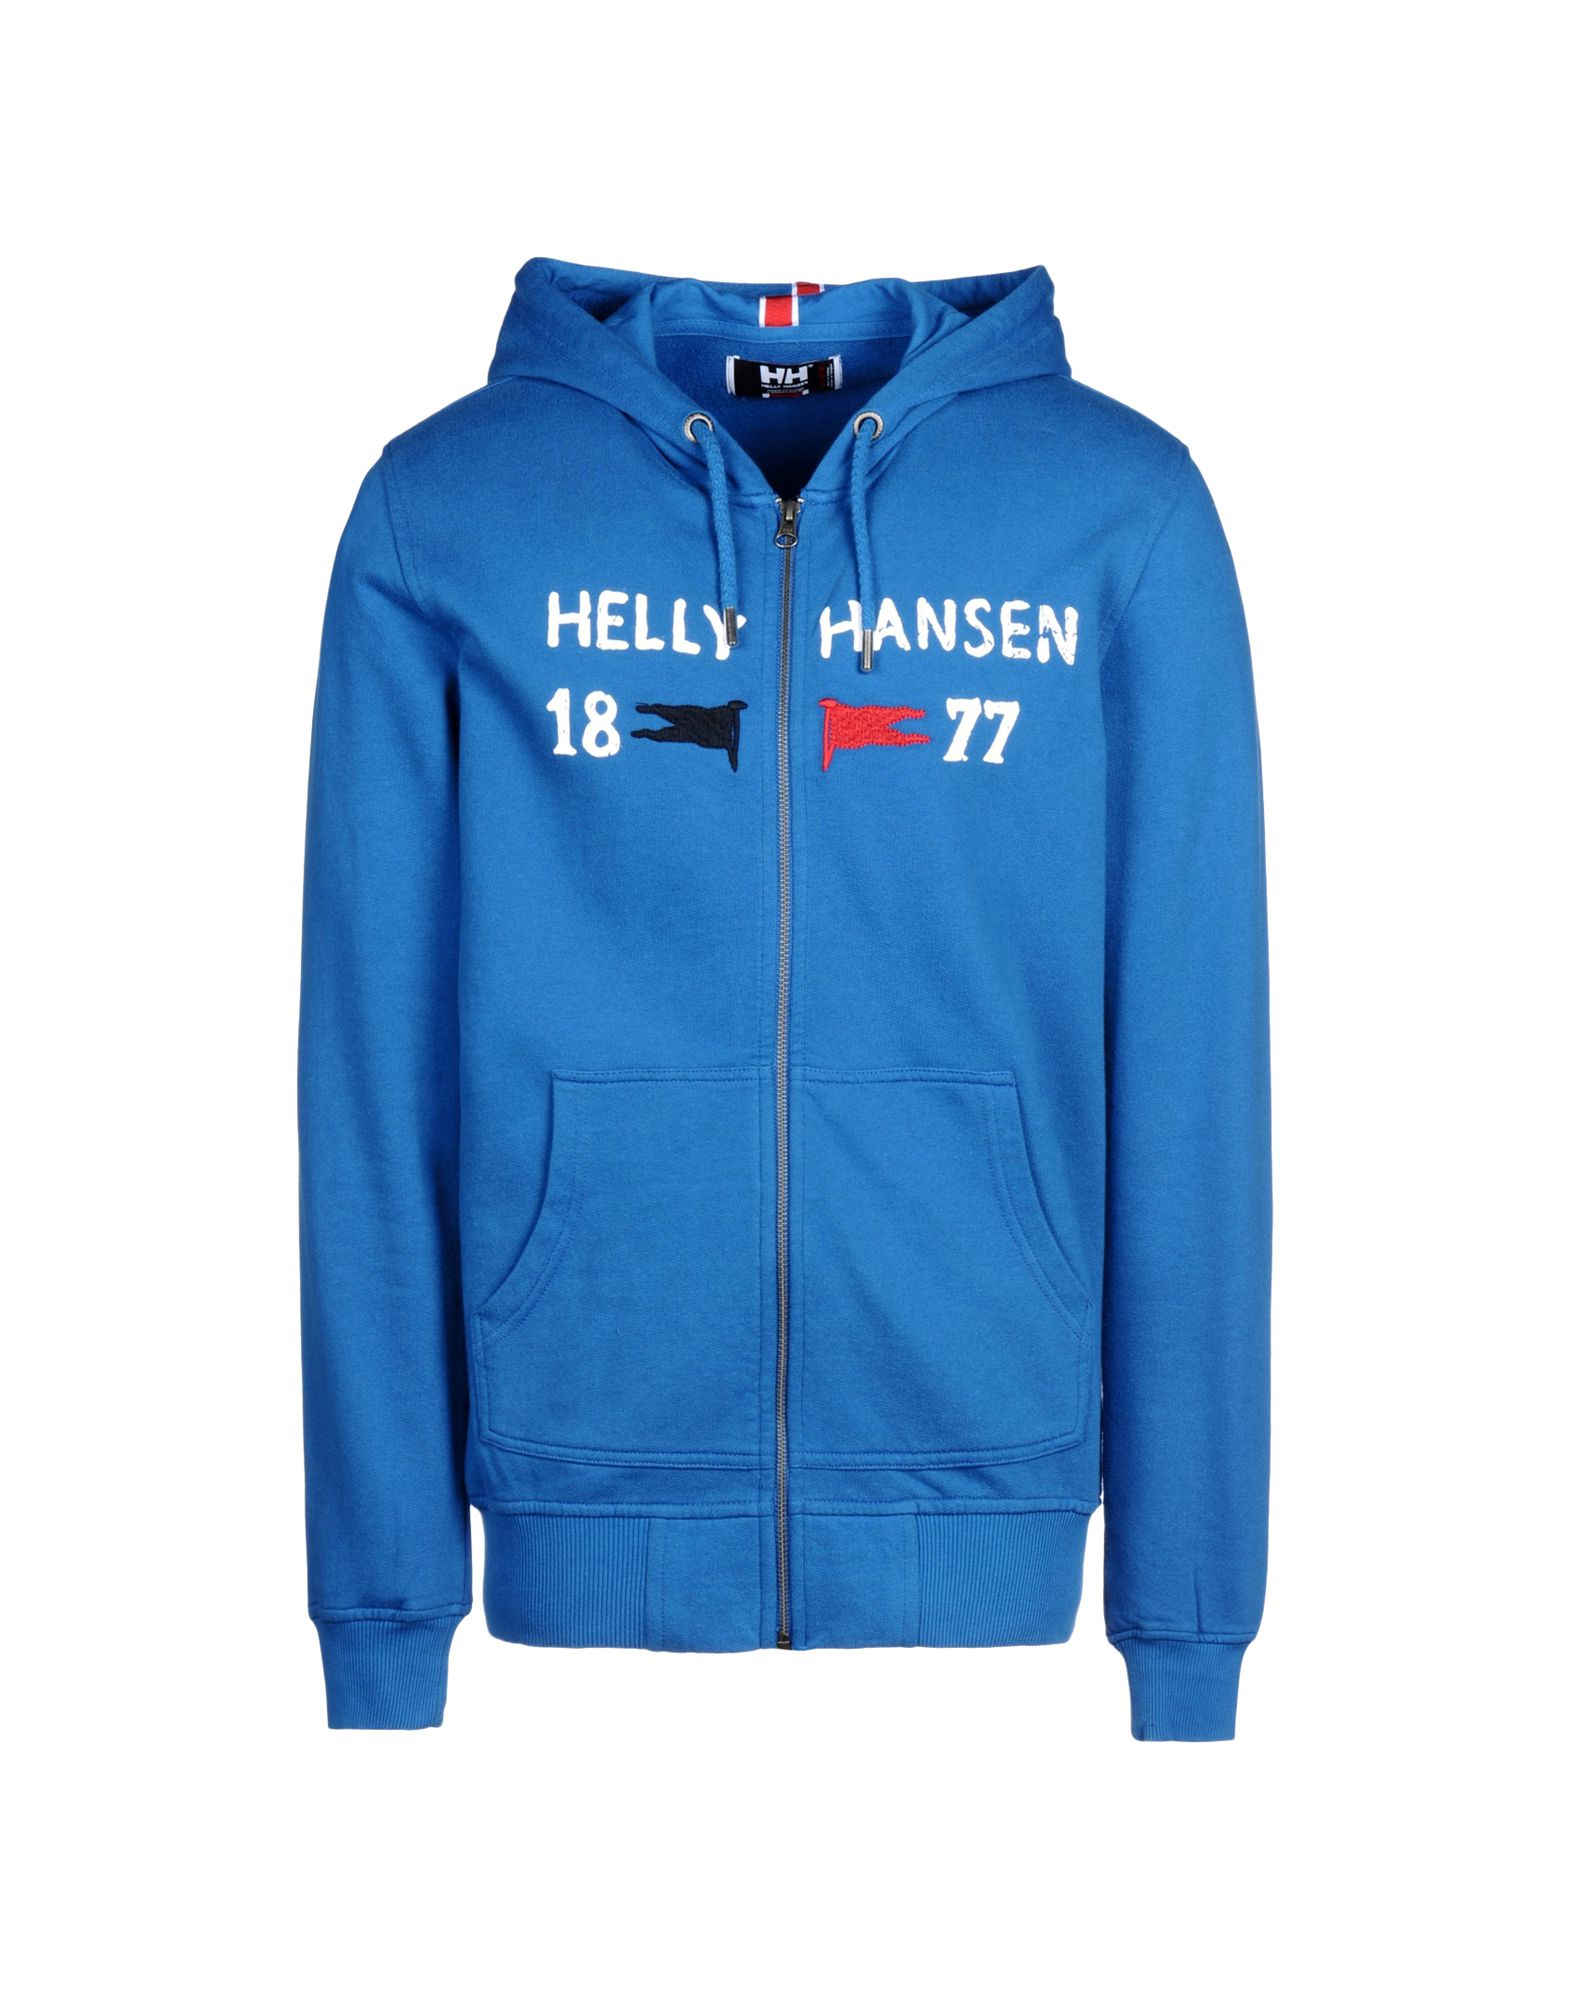 lyst helly hansen sweatshirt in blue for men. Black Bedroom Furniture Sets. Home Design Ideas